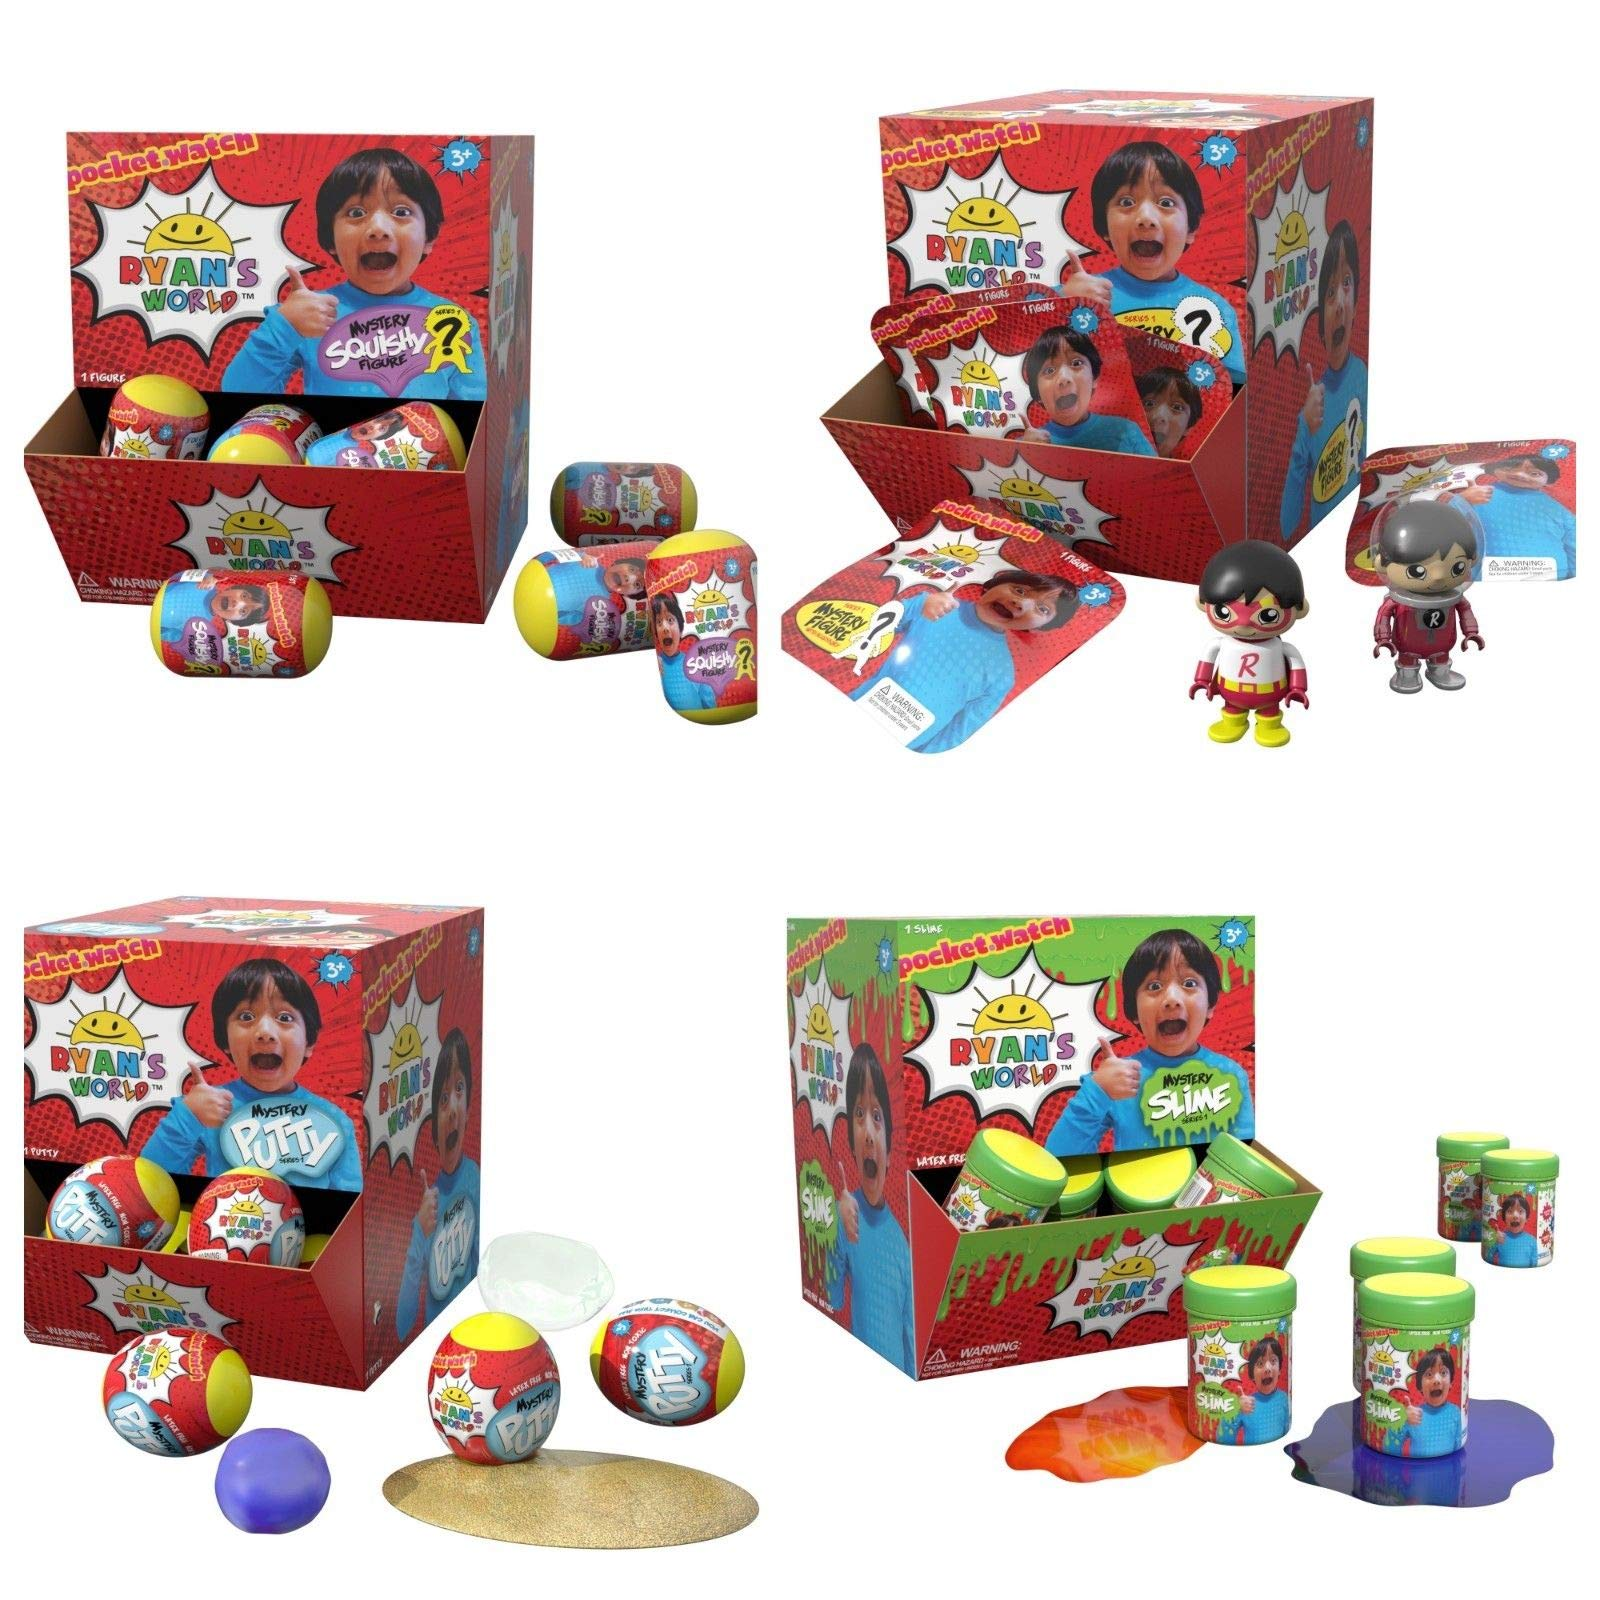 Ryan's World Mystery Egg 1 Slime +1 Putty + 1Squishy +1 Bag Ryan Toy Review Bundle